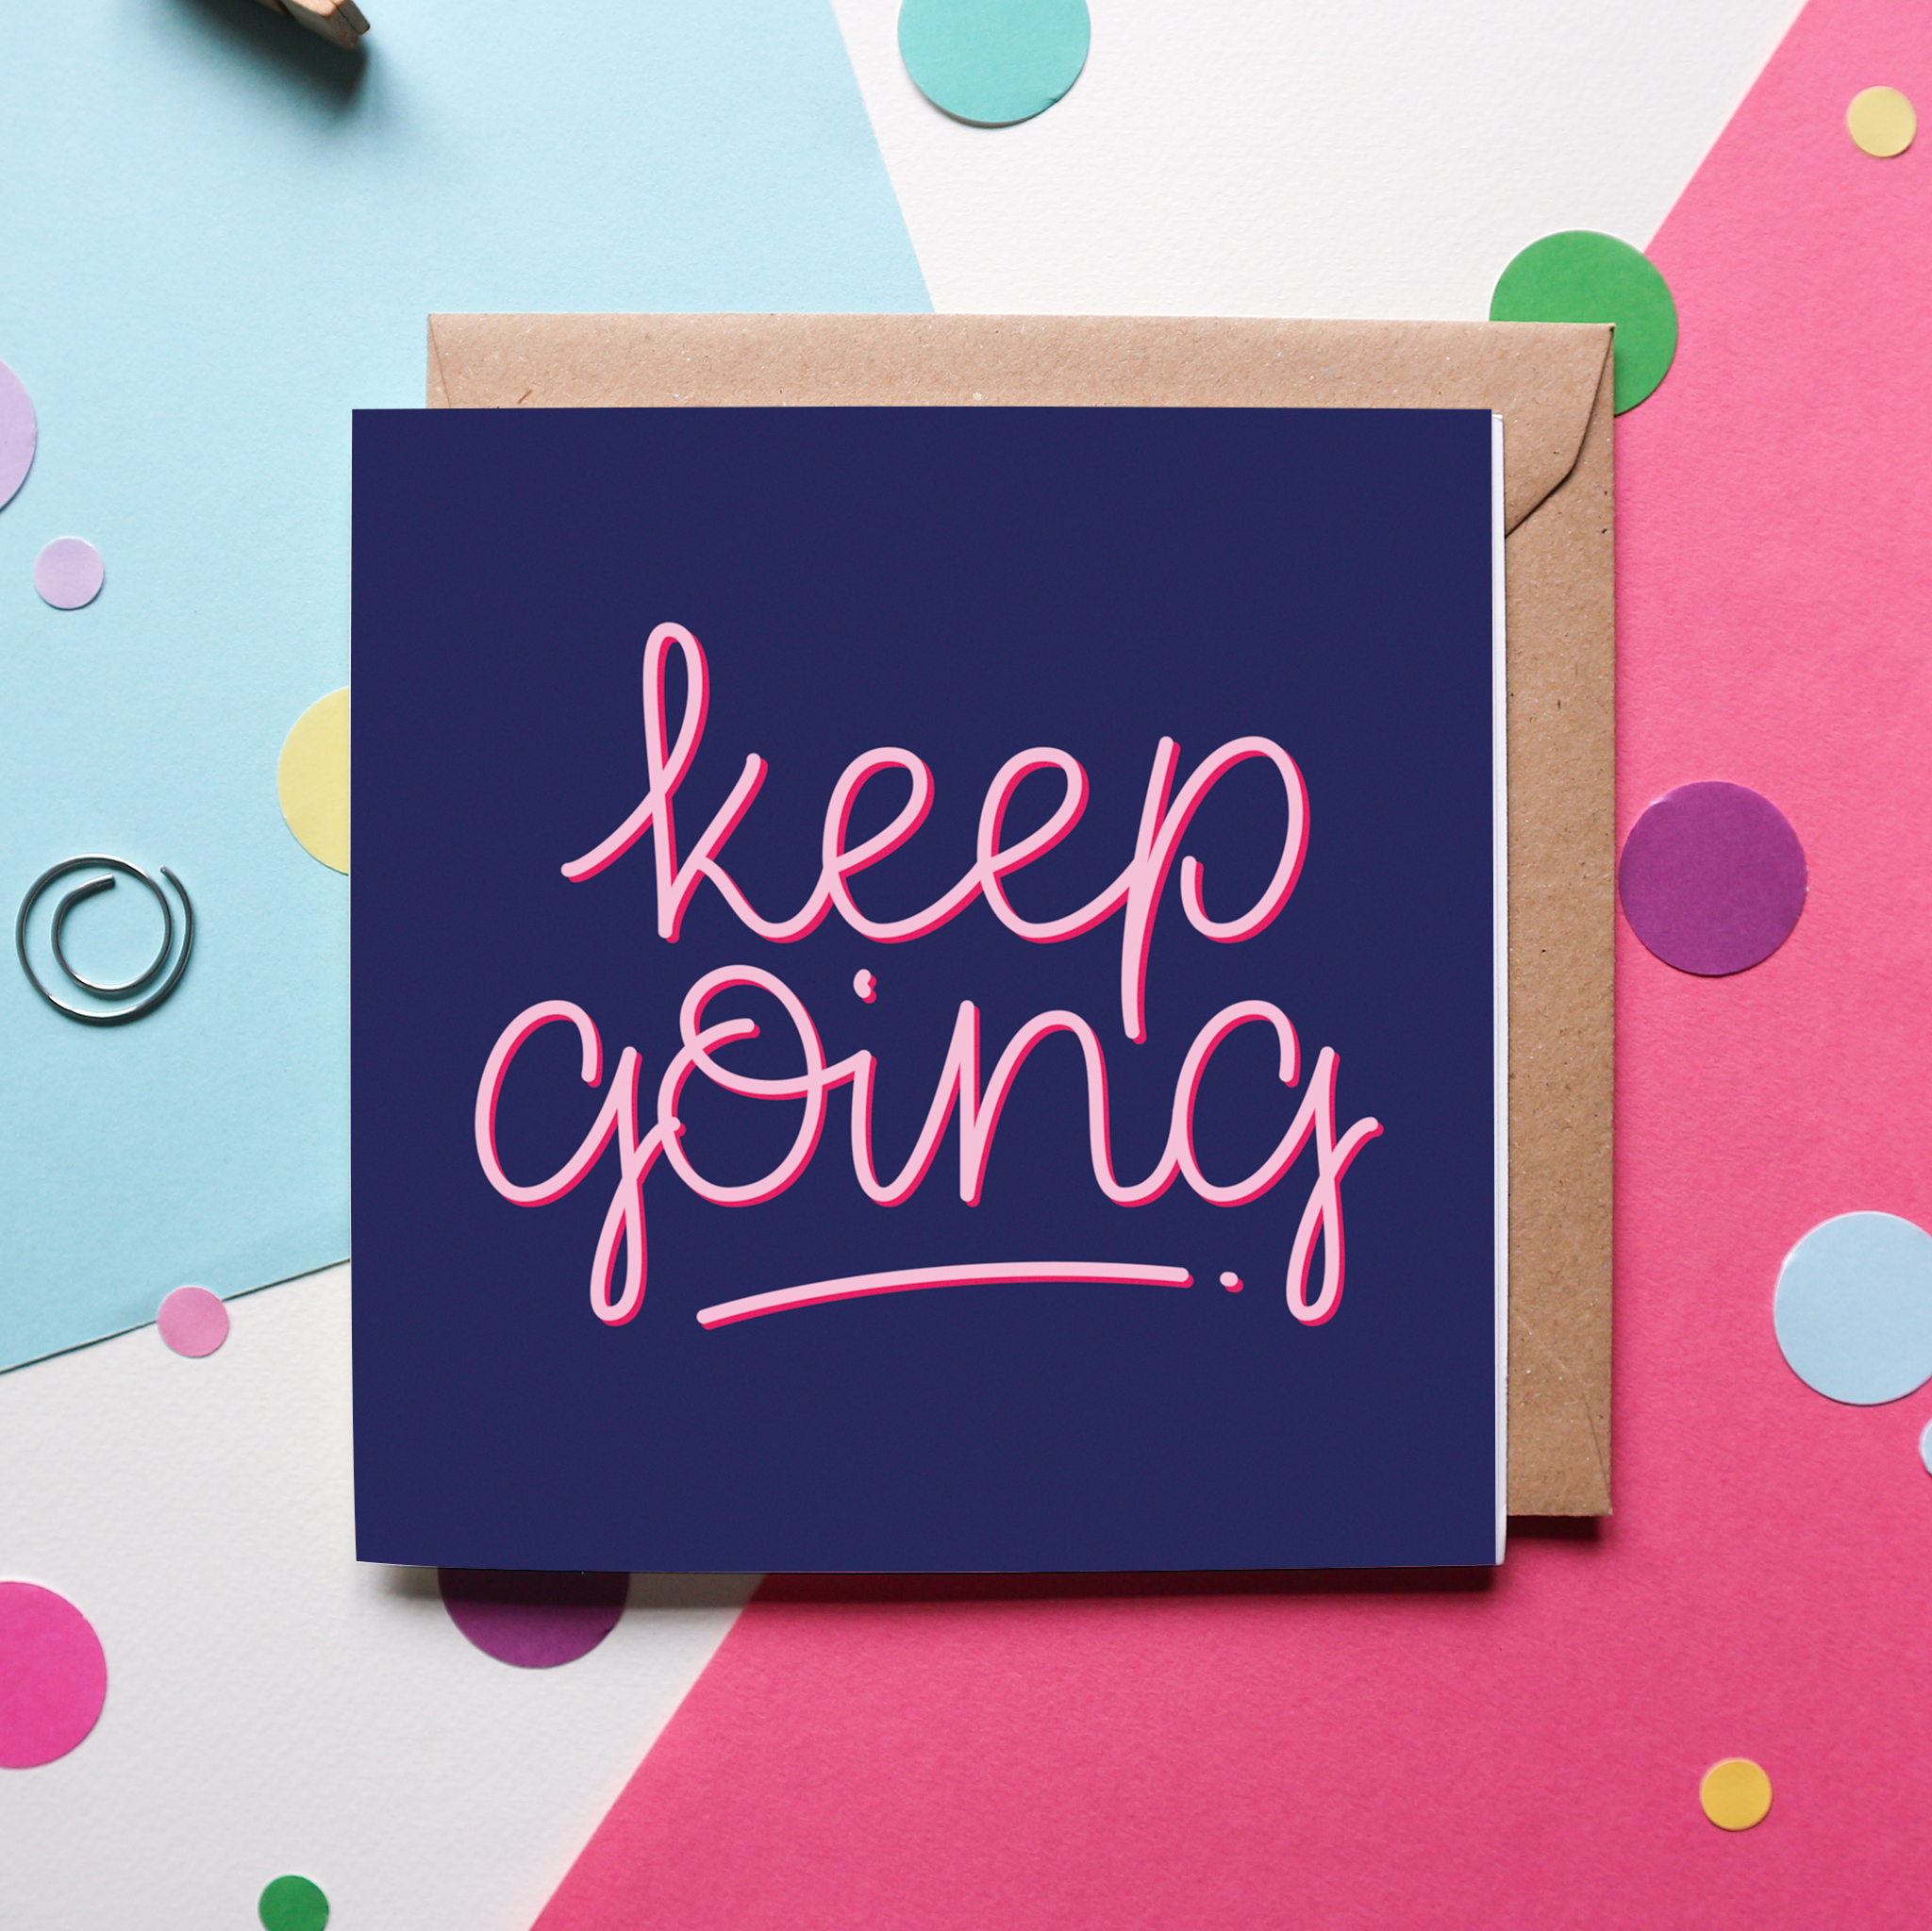 "A charming hand-lettered design that reads ""Keep Going"" in pink cursive, against a navy blue background on a greeting card. The greeting card sits against a brown, kraft envelope and against a pink and blue background with colourful confetti and paperclips."